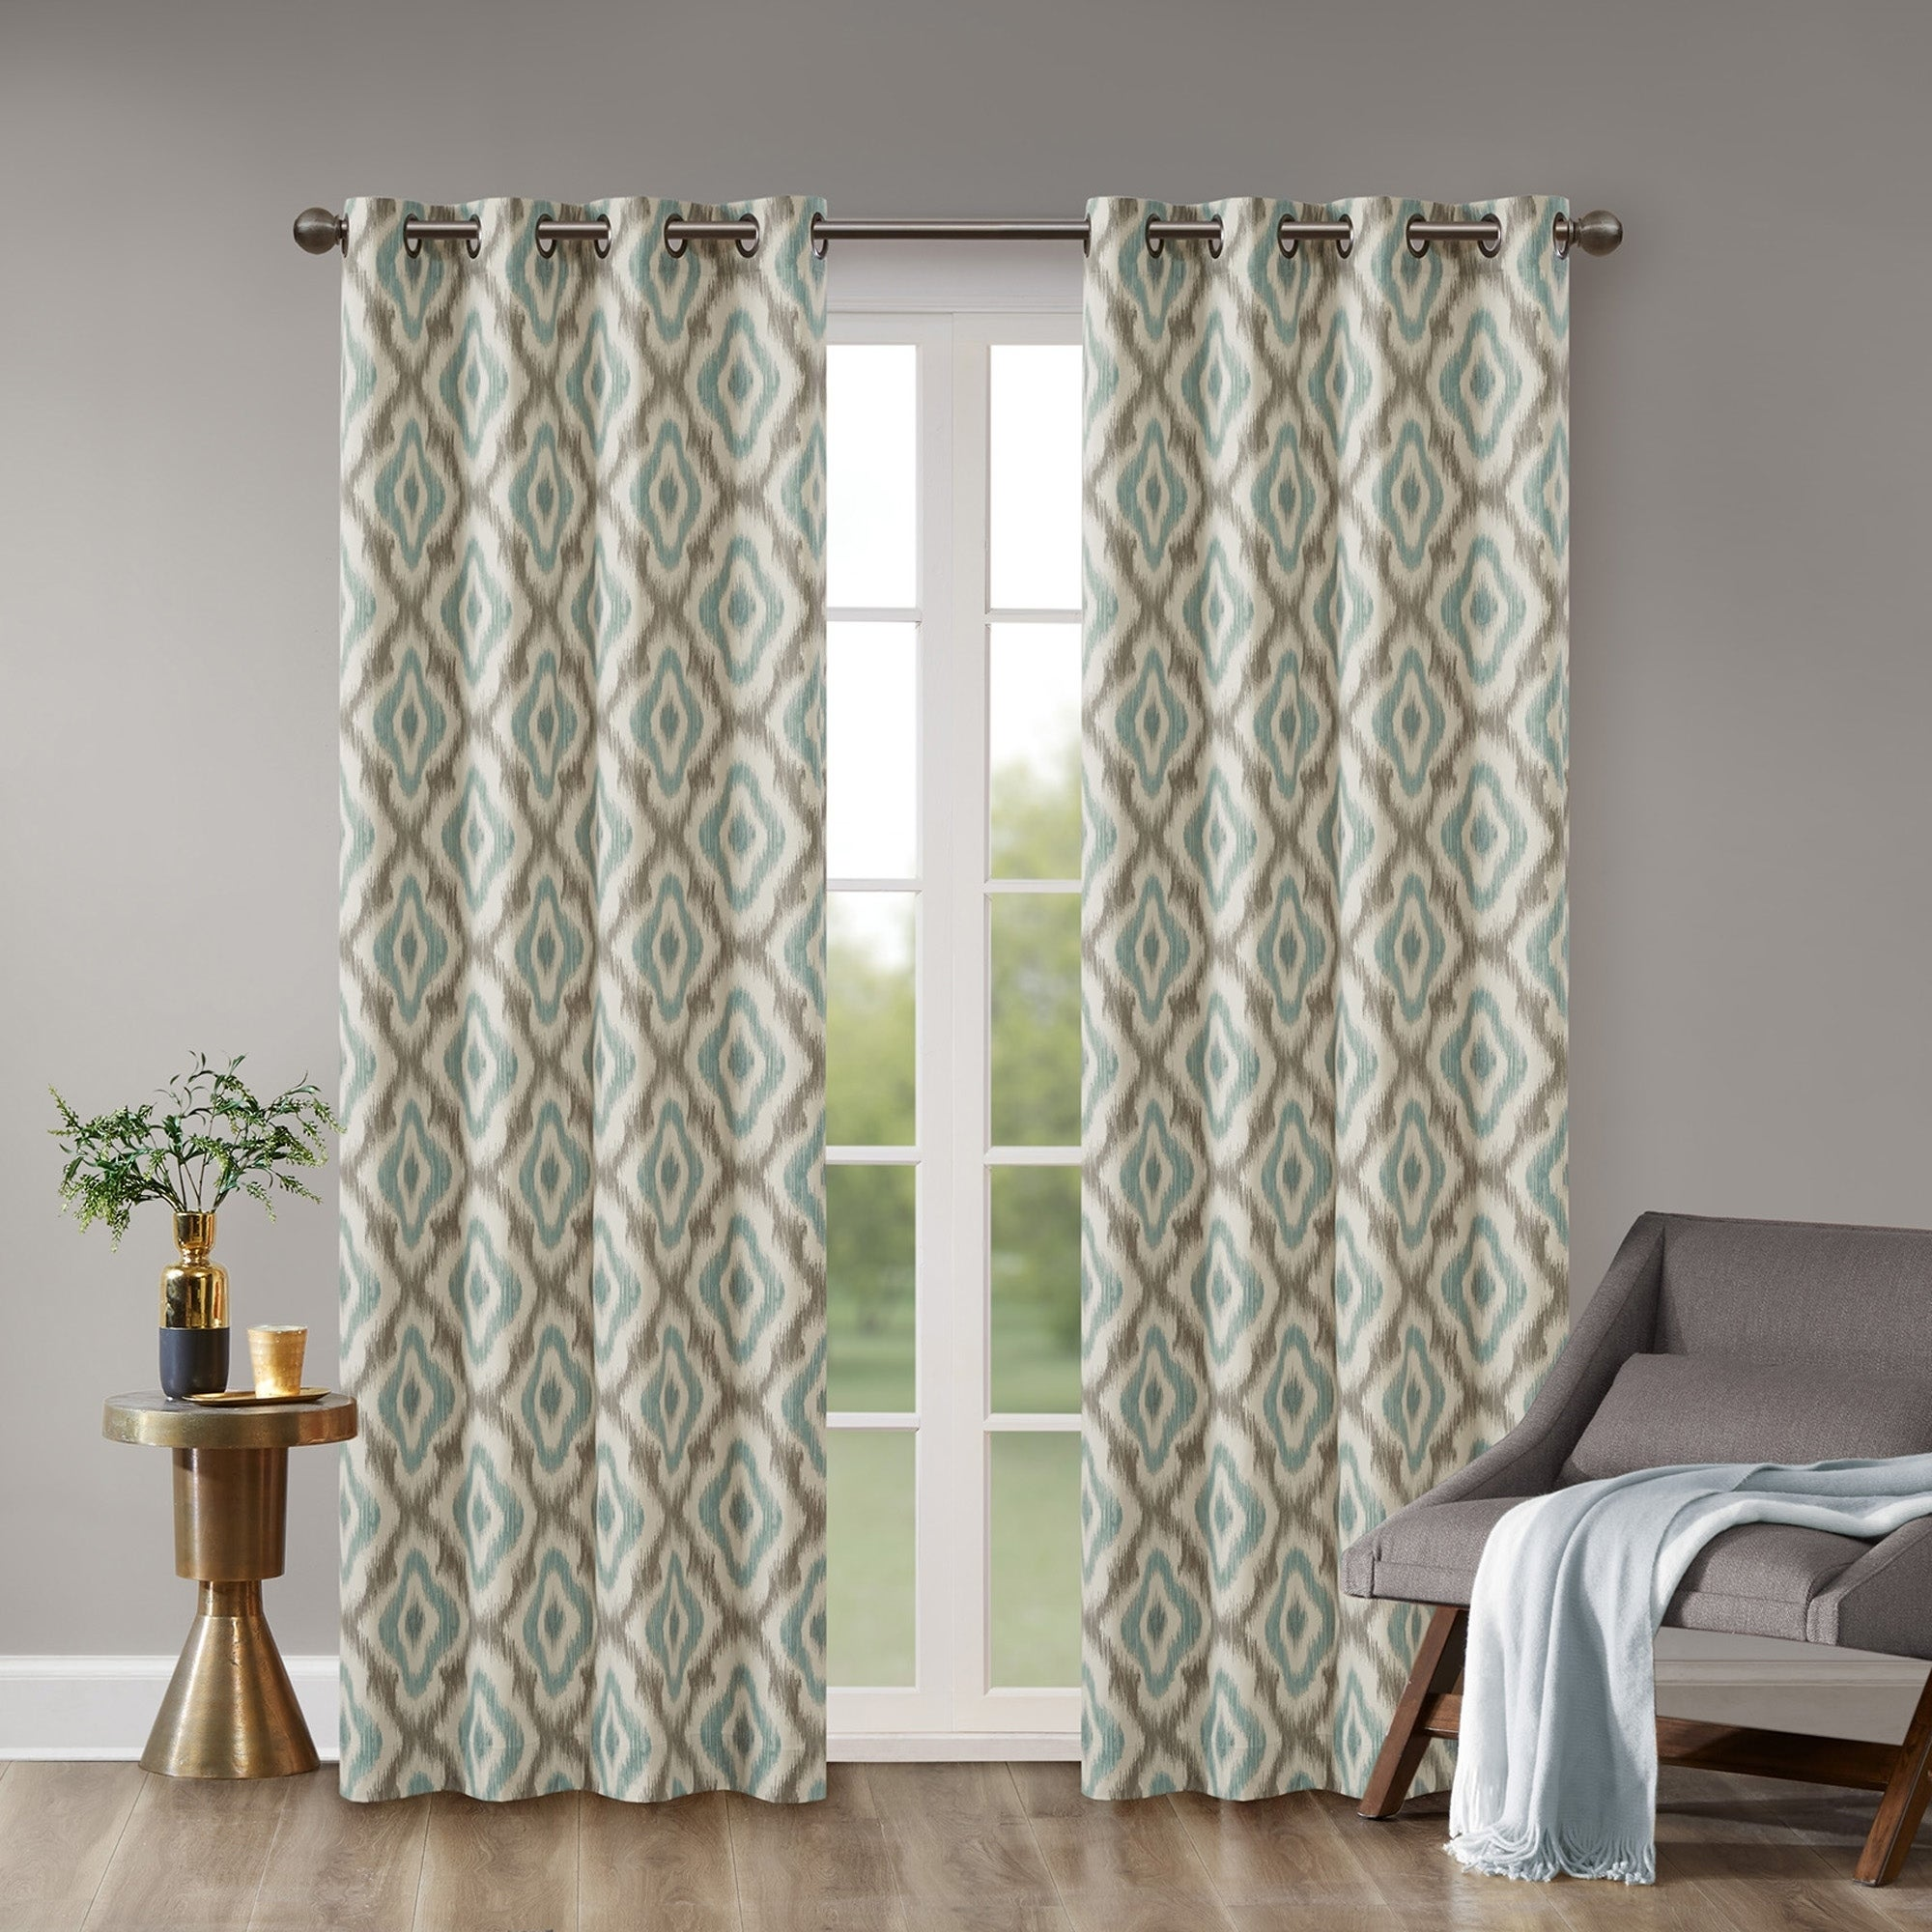 Buy 108 Inches Geometric Curtains Drapes Online At Overstock